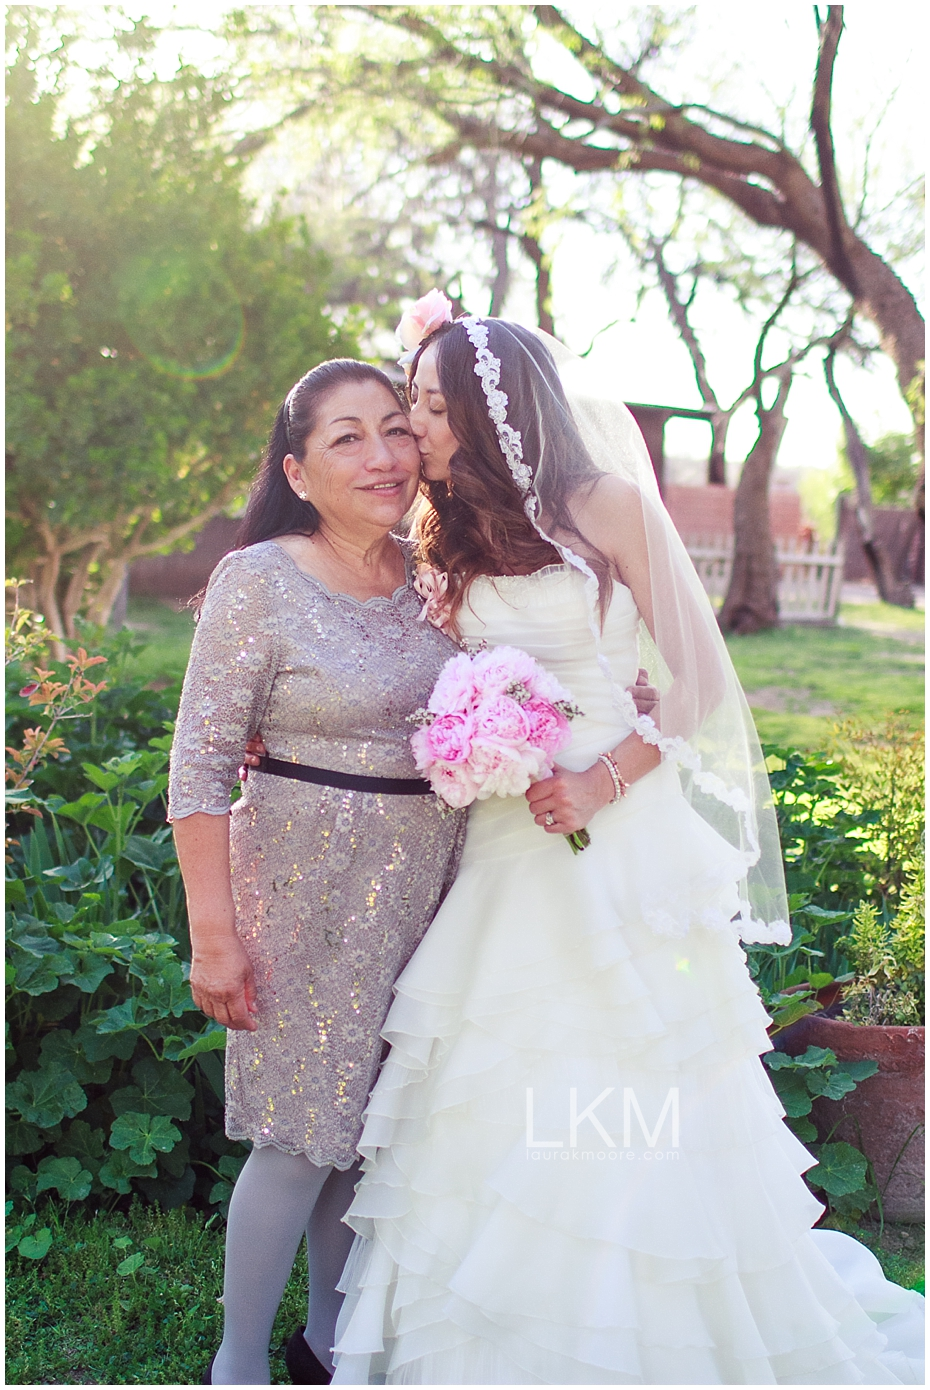 agua-linda-farm-alice-in-wonderland-tucson-wedding-photographer_0043.jpg